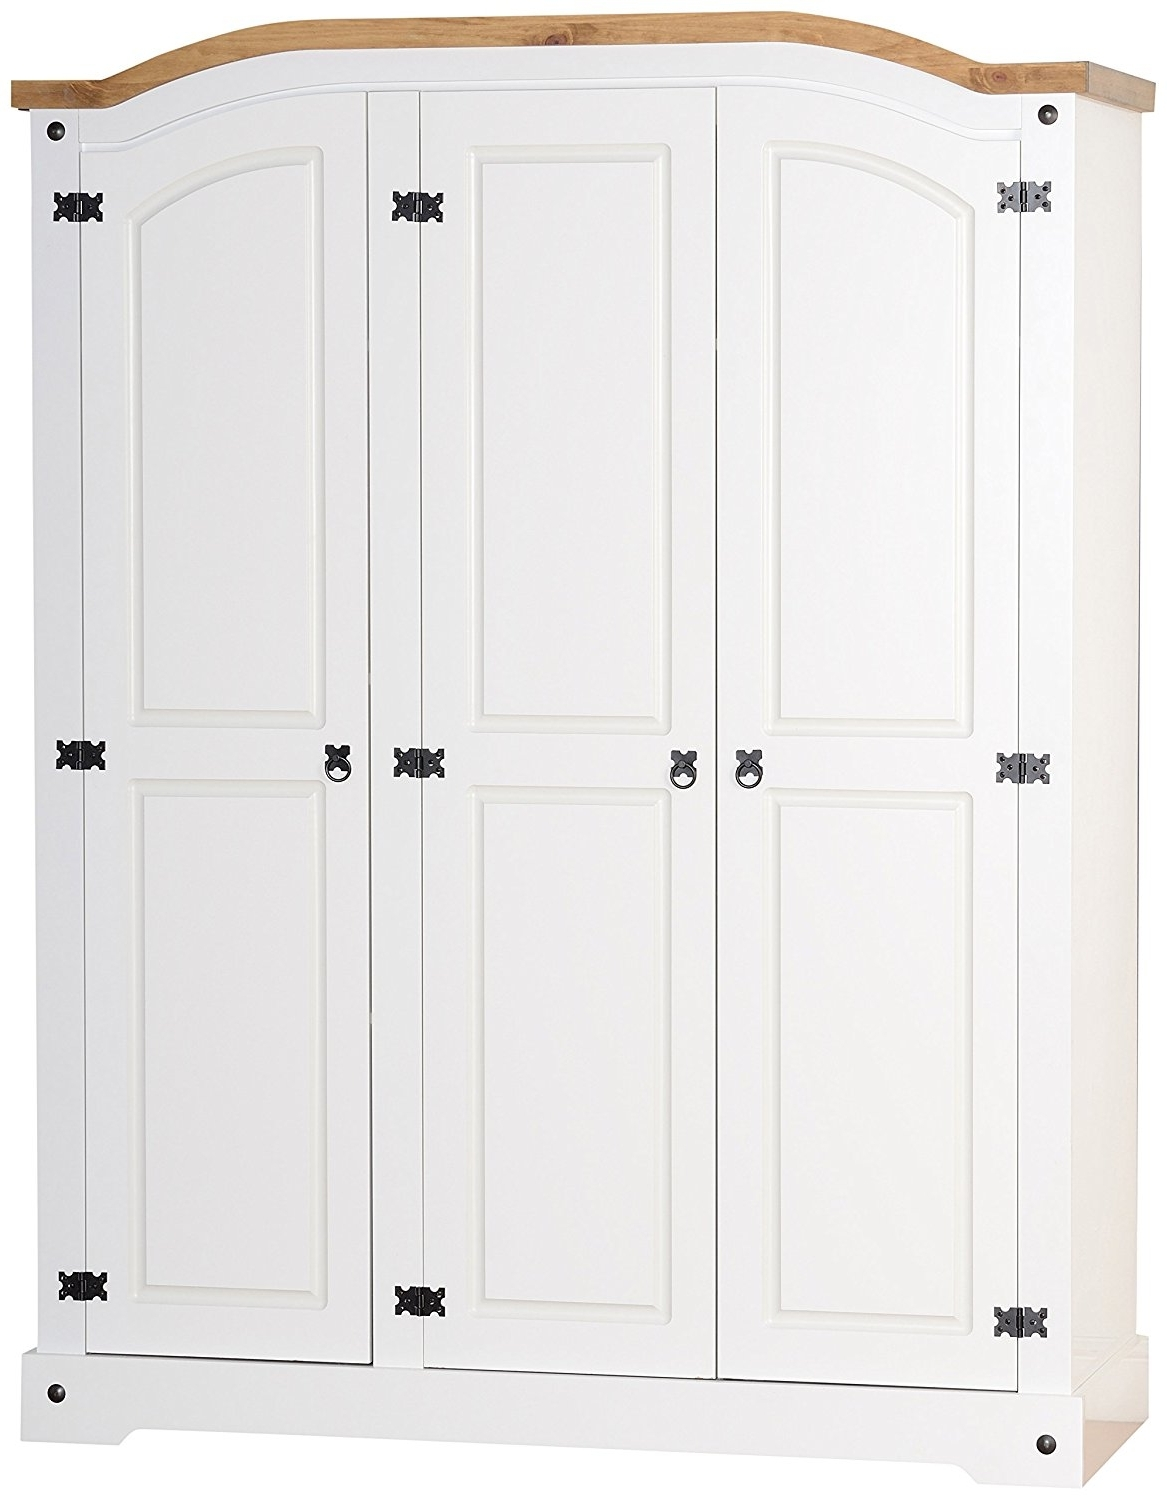 Fashionable Seconique Corona 3 Door Wardrobe – White/distressed Waxed Pine With Regard To 3 Door White Wardrobes (View 4 of 15)